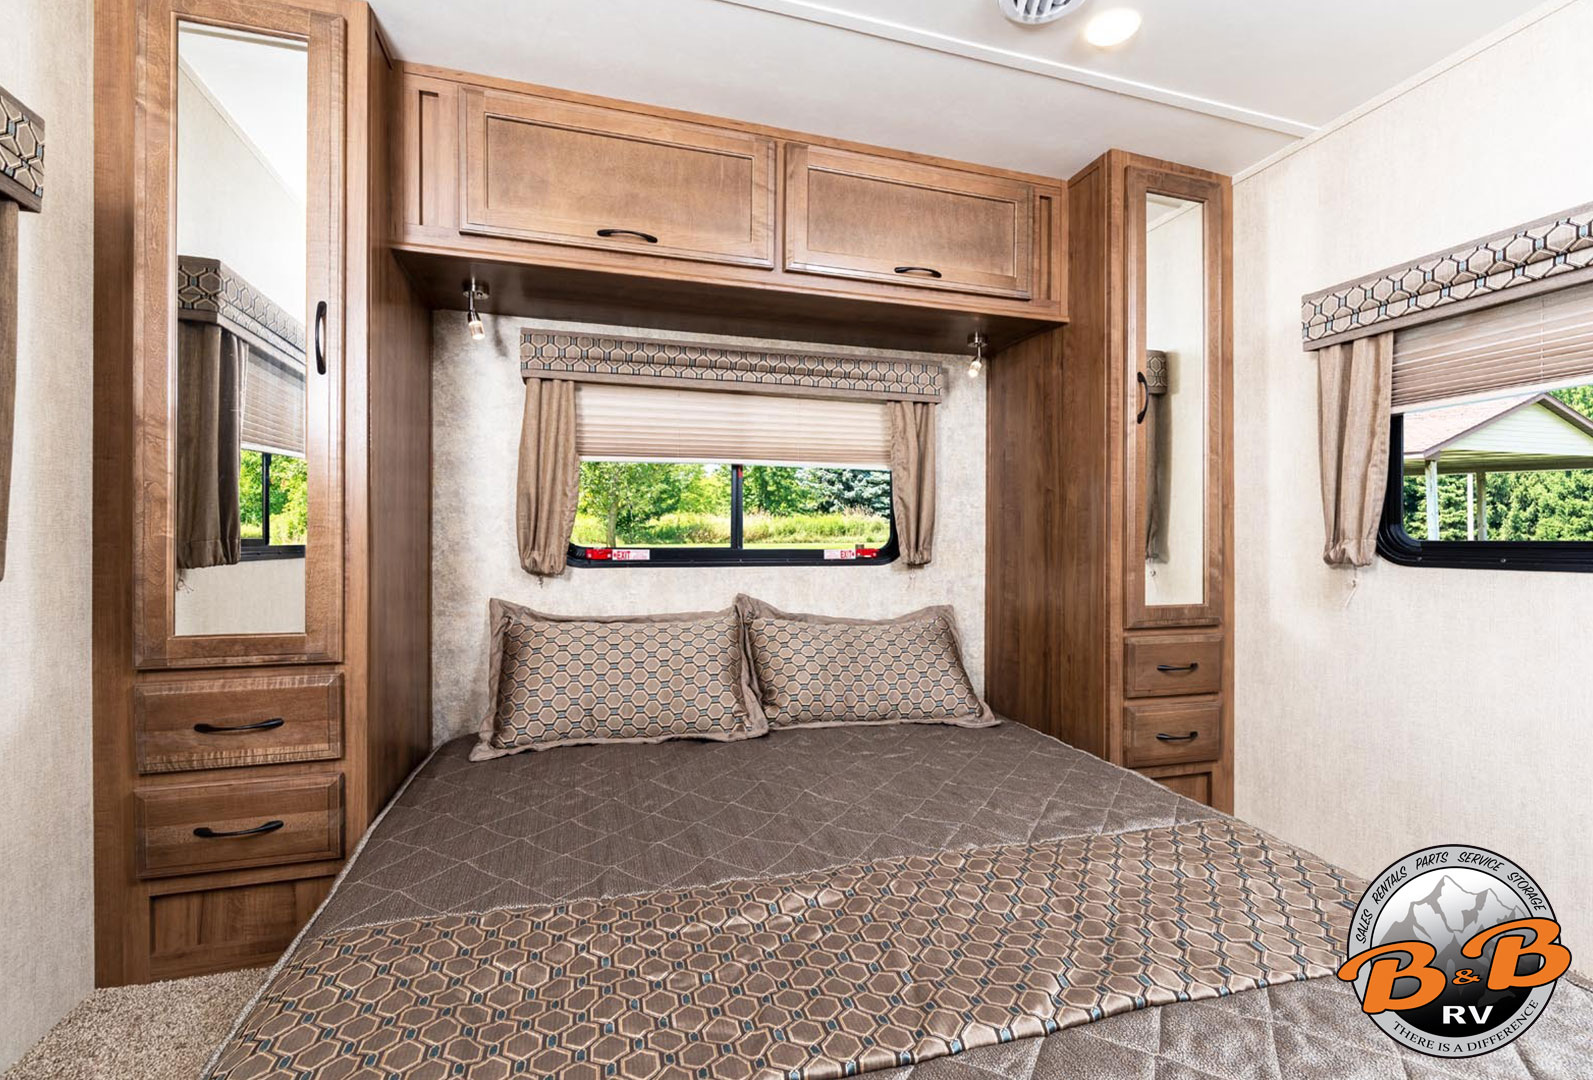 31 Inch Class C with 1 Slide 31G Rear Bedroom